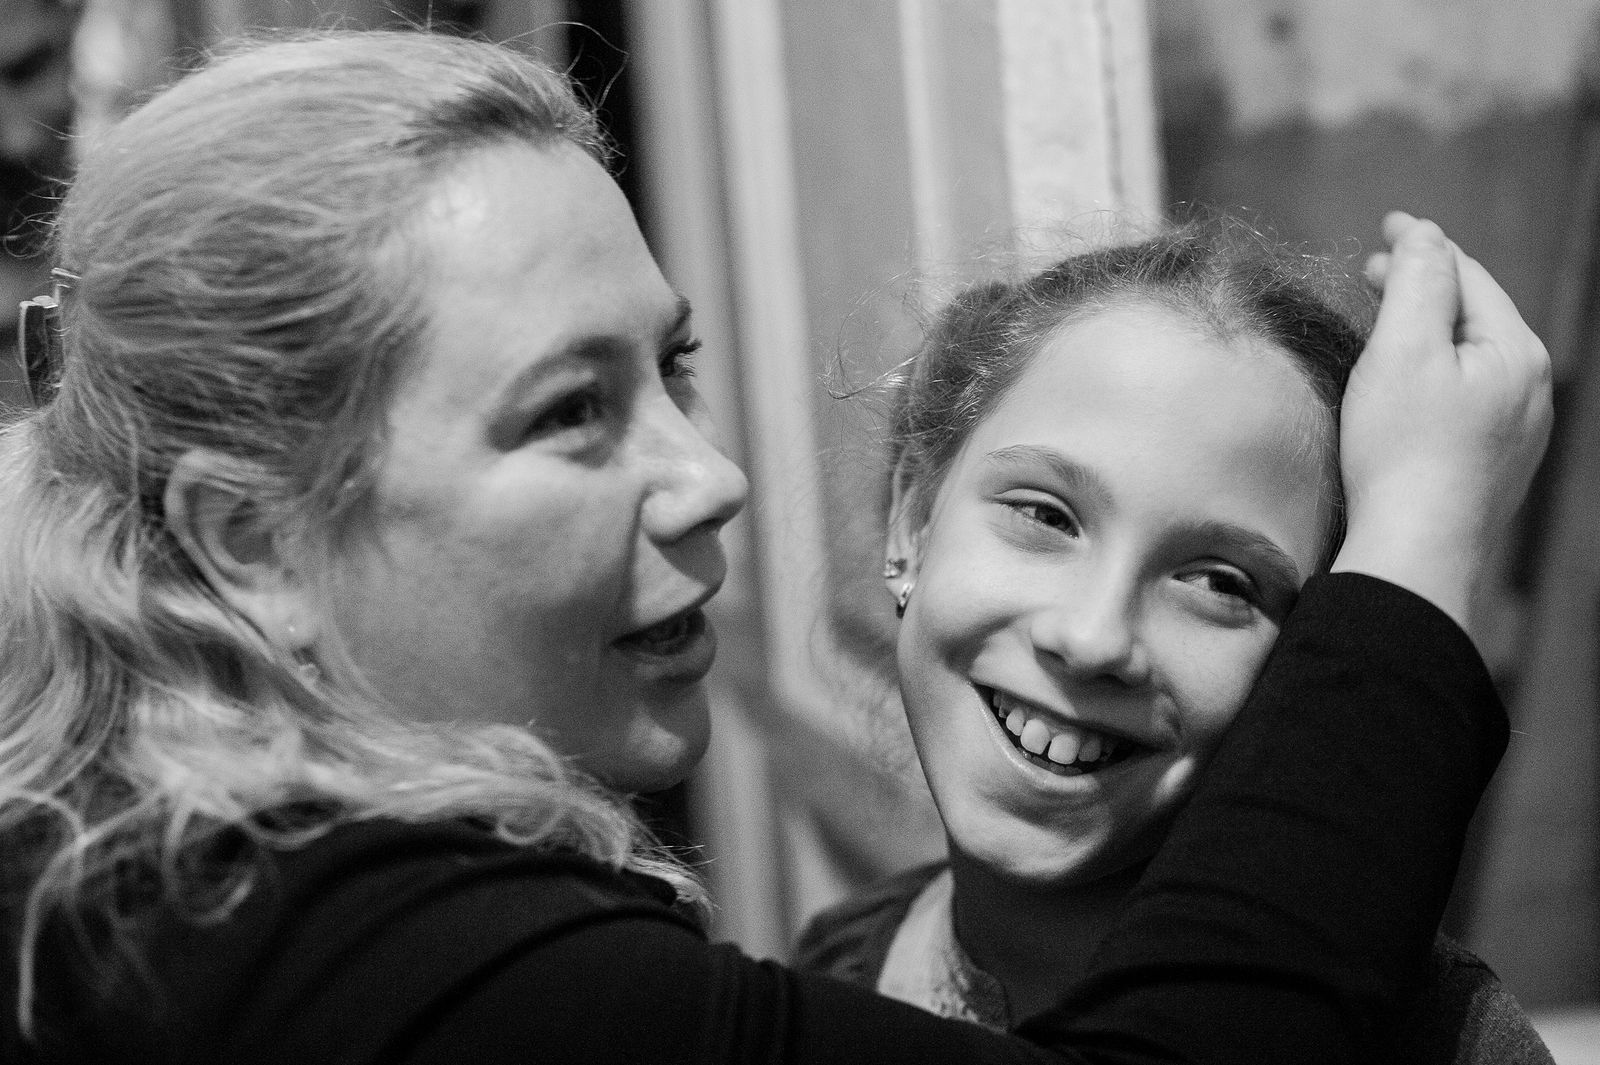 """Arik Shraga. """"Joint"""" Families: The Stories of Love. 2016. Ukraine, Odessa. Lera and her mother"""